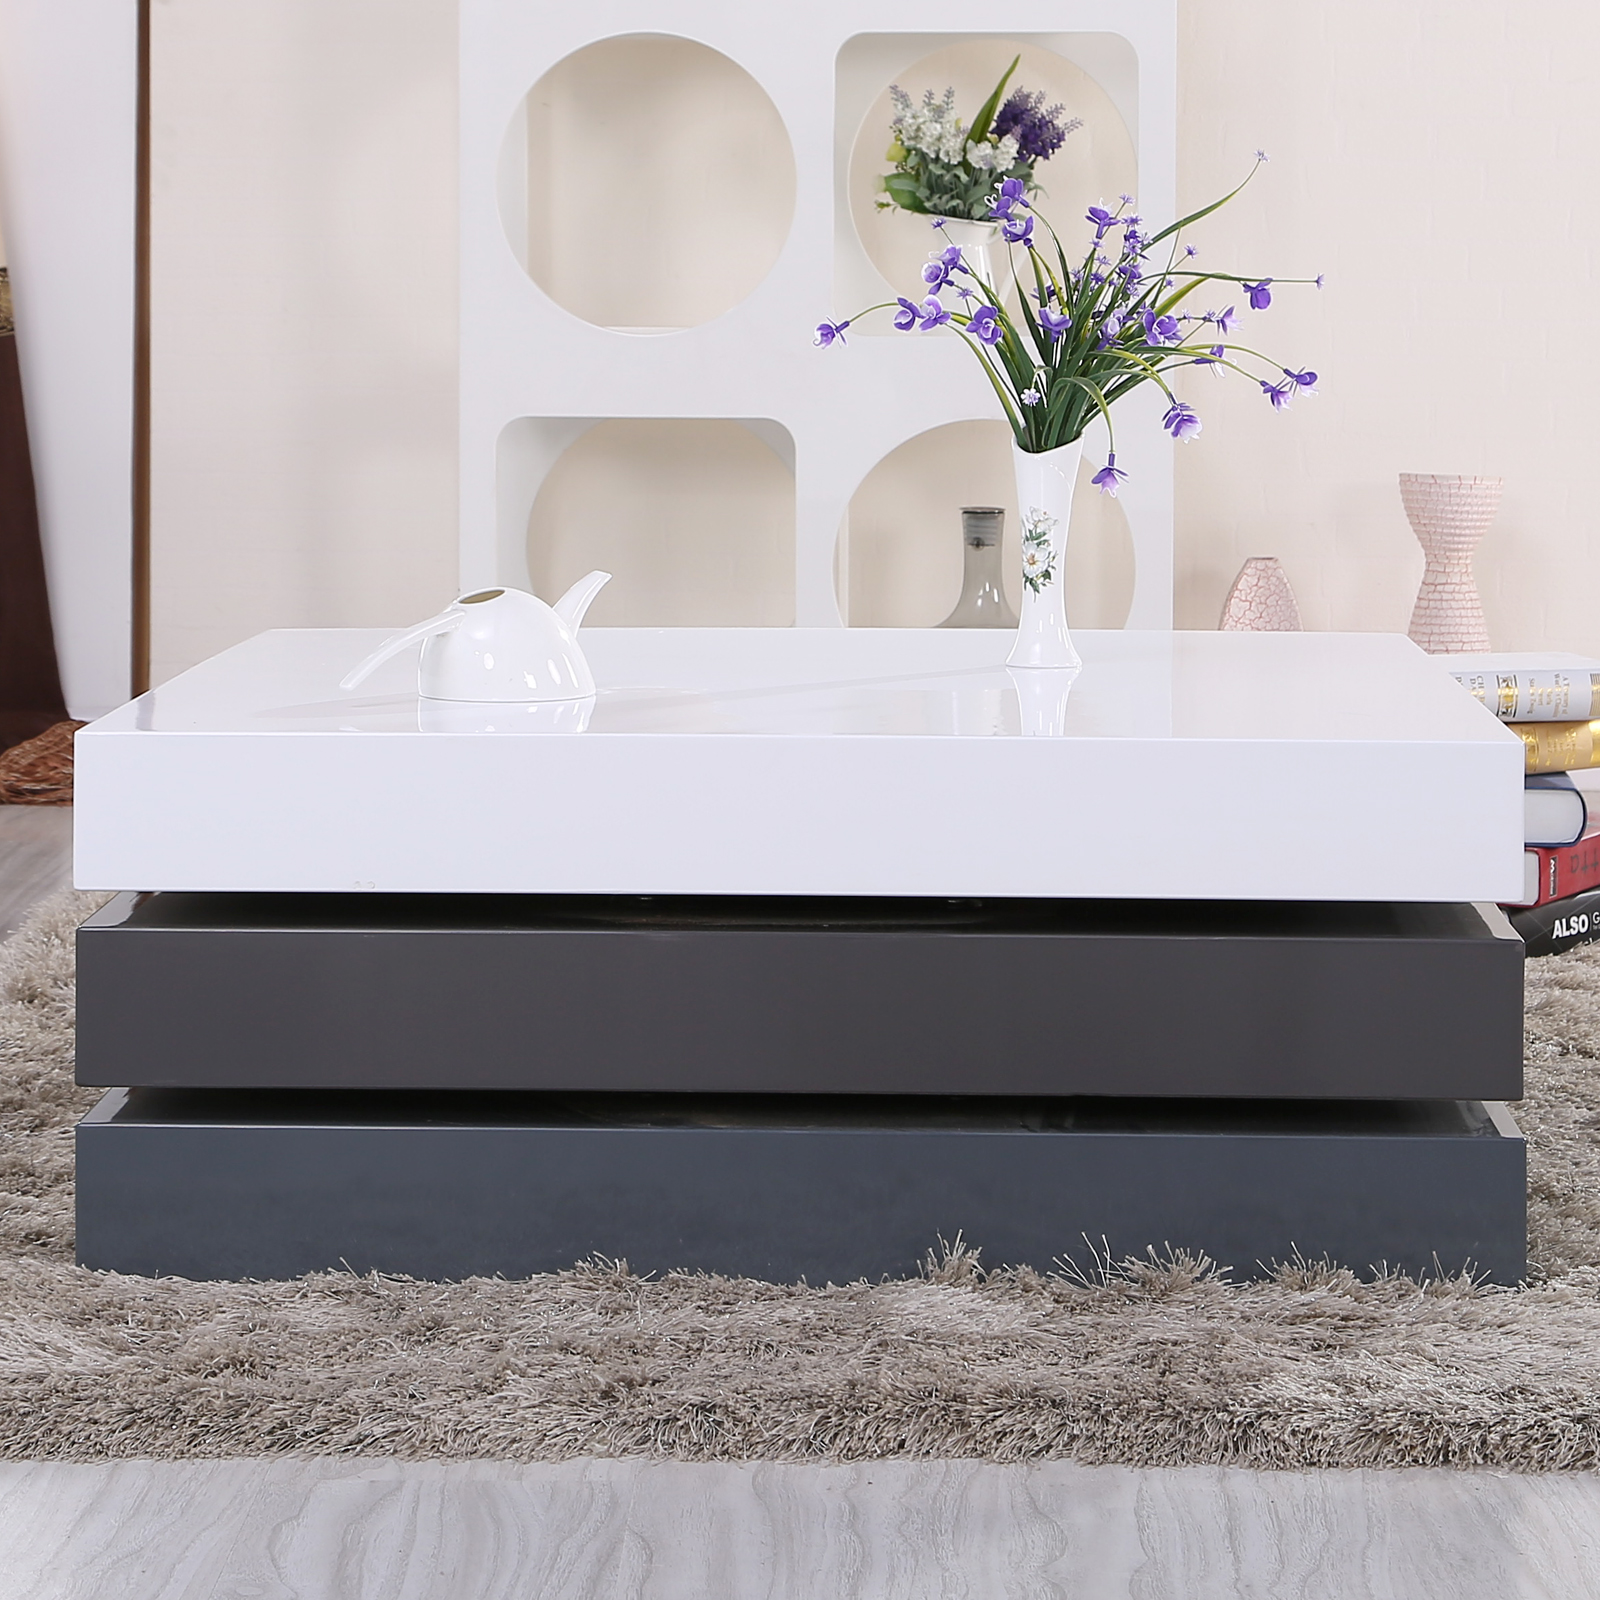 Elisa Coffee Table Square In High Gloss White With Storage: High Gloss Square Storage Rotating Coffee Table W/3 Layers